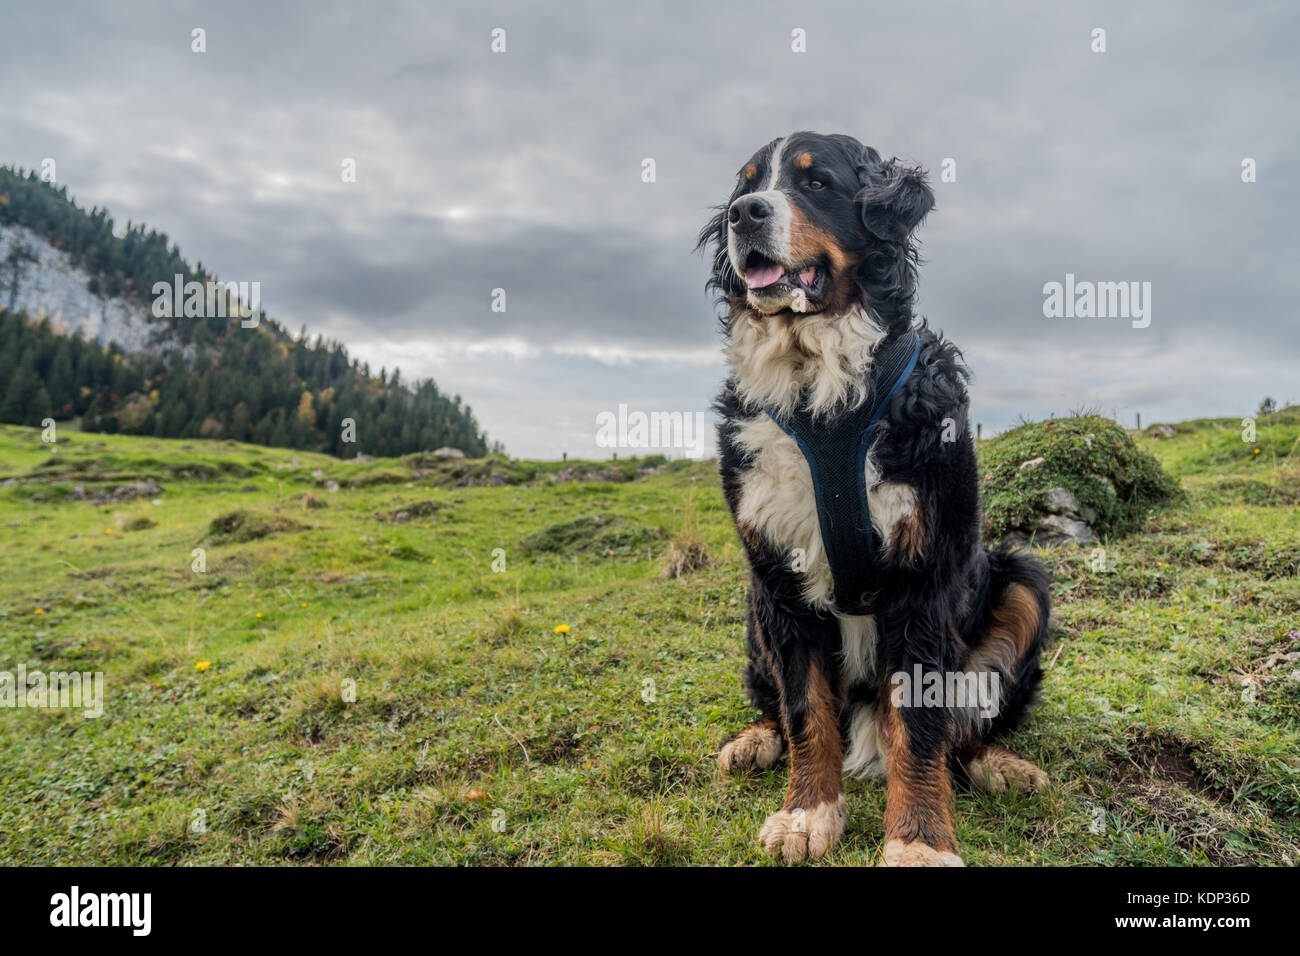 Beautiful Male Bernese Mountain Dog in the Appenzell region of Swiss Alps - Stock Image